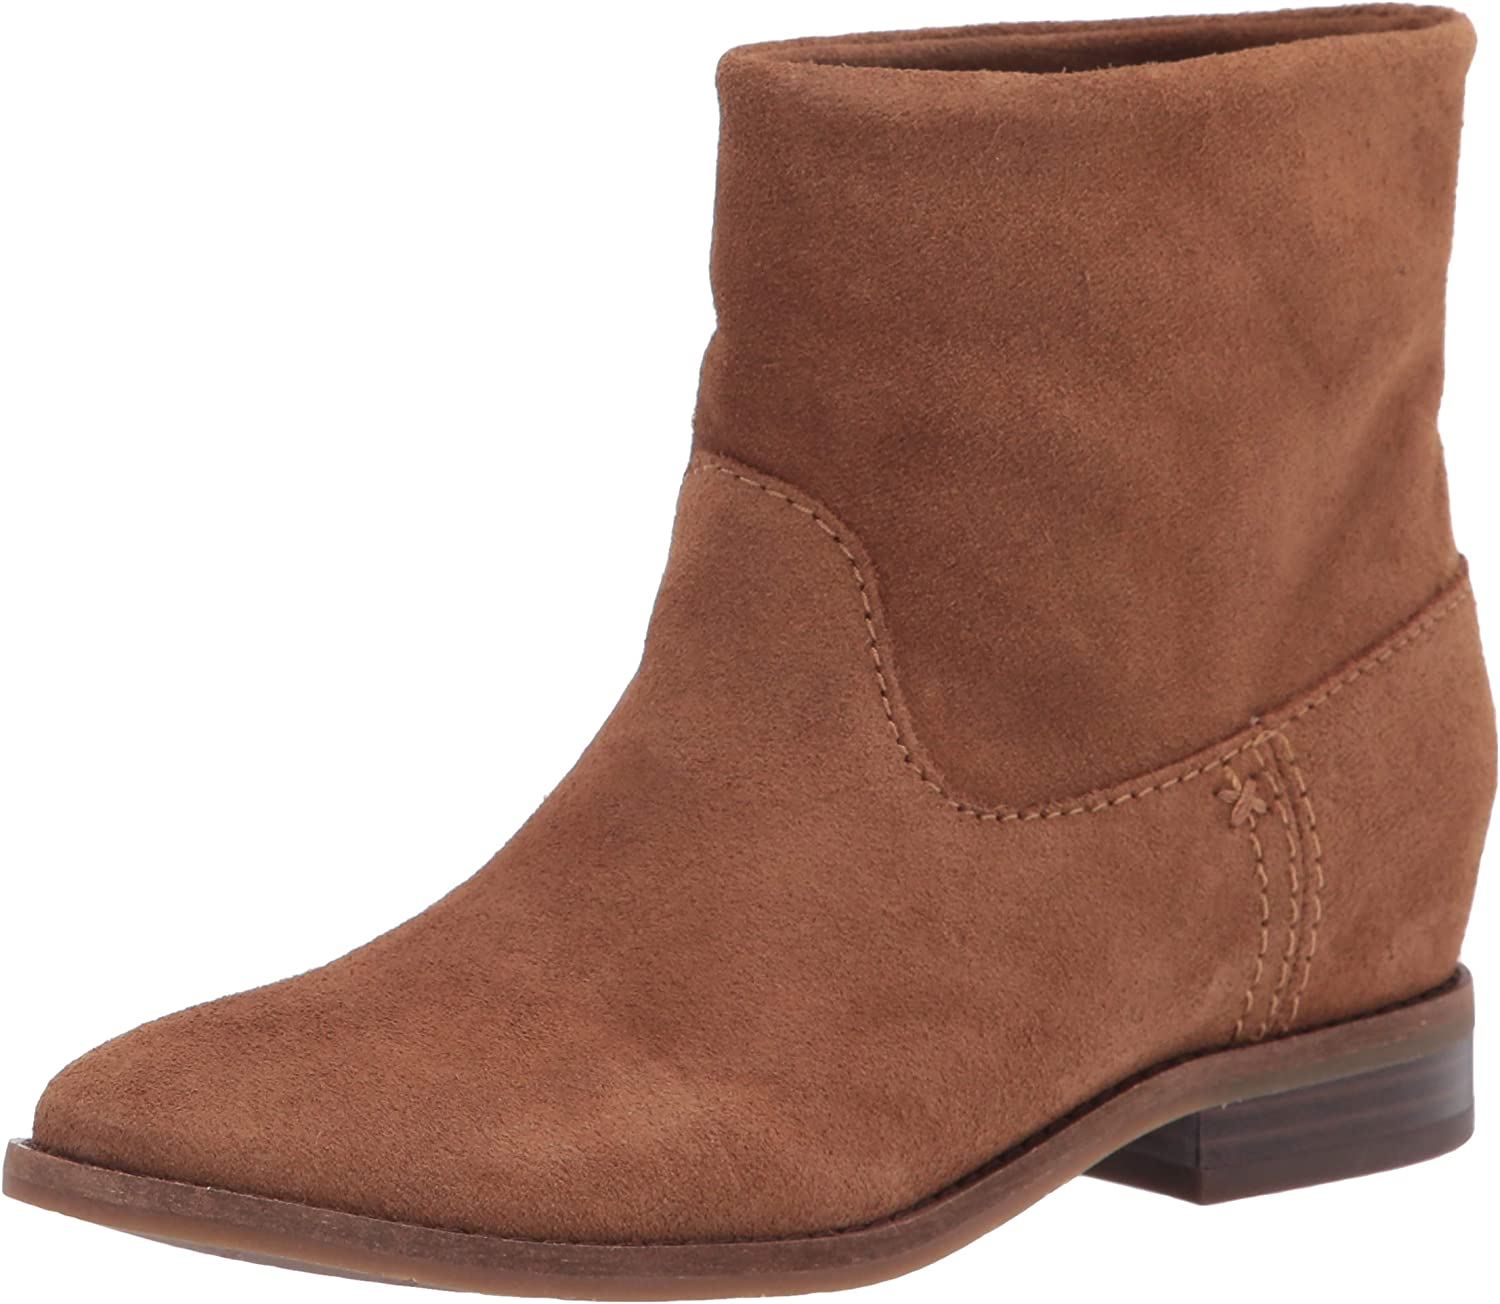 Splendid Women's Lewis Challenge the lowest price of Japan ☆ Ankle Boot Attention brand